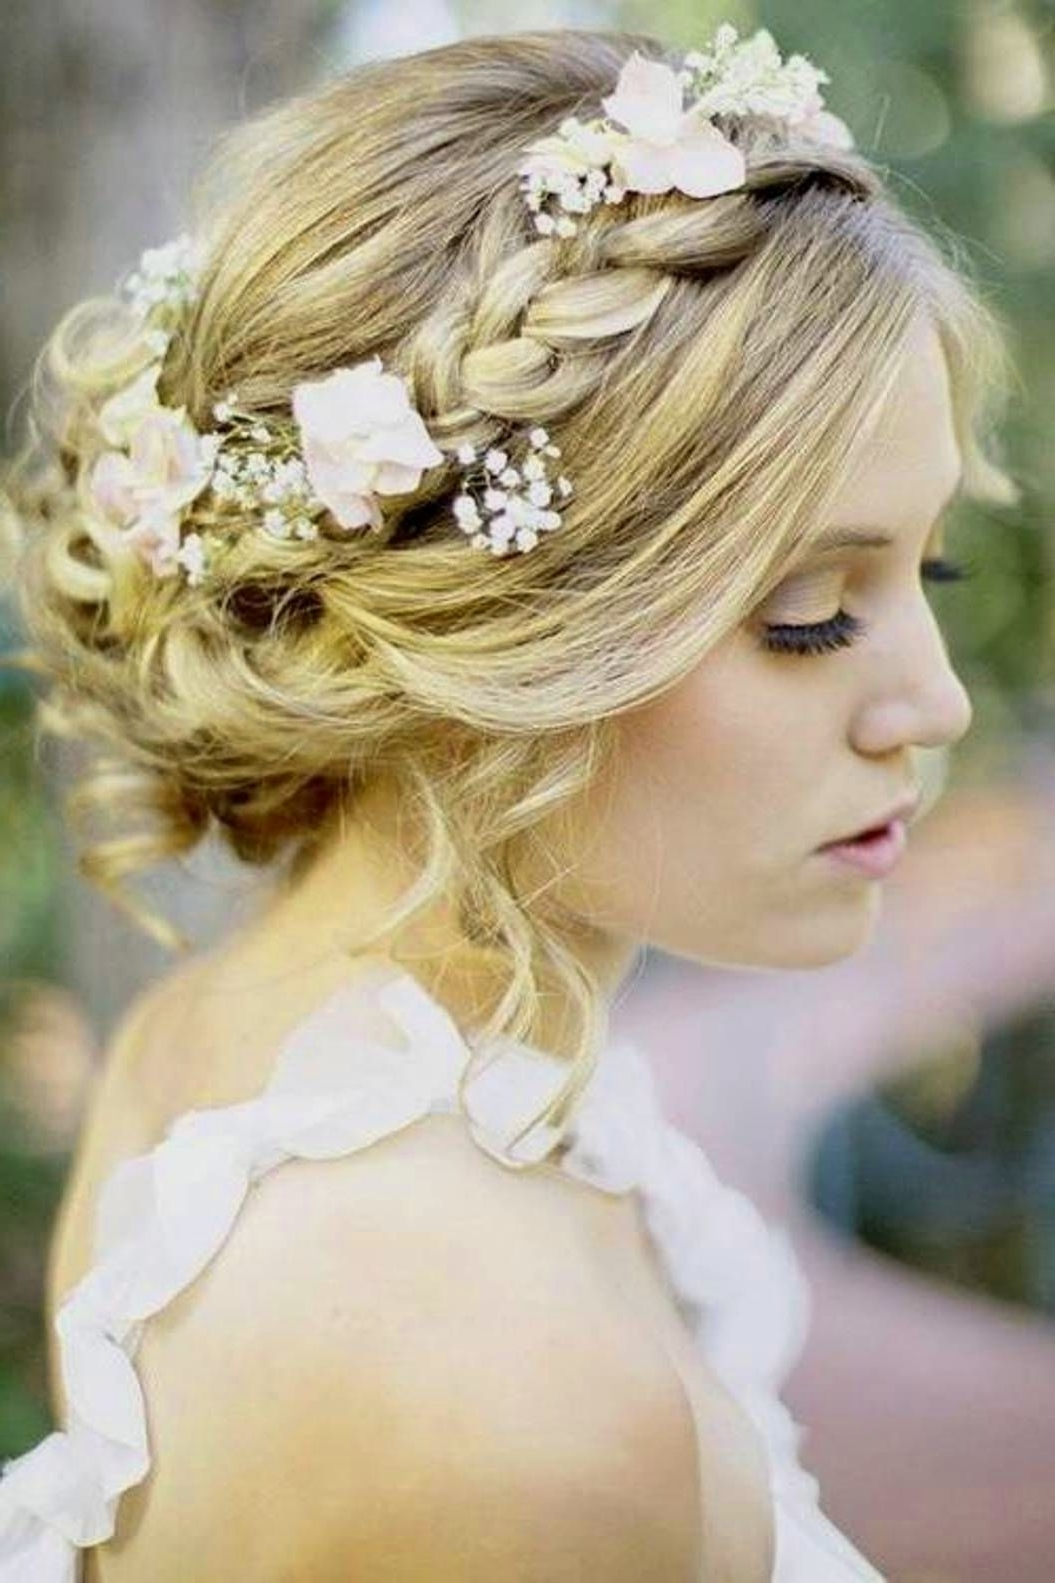 Simple Bridal Hairstyles For Medium Length Hair – The Newest Hairstyles Pertaining To Most Popular Elegant Wedding Hairstyles For Shoulder Length Hair (View 11 of 15)